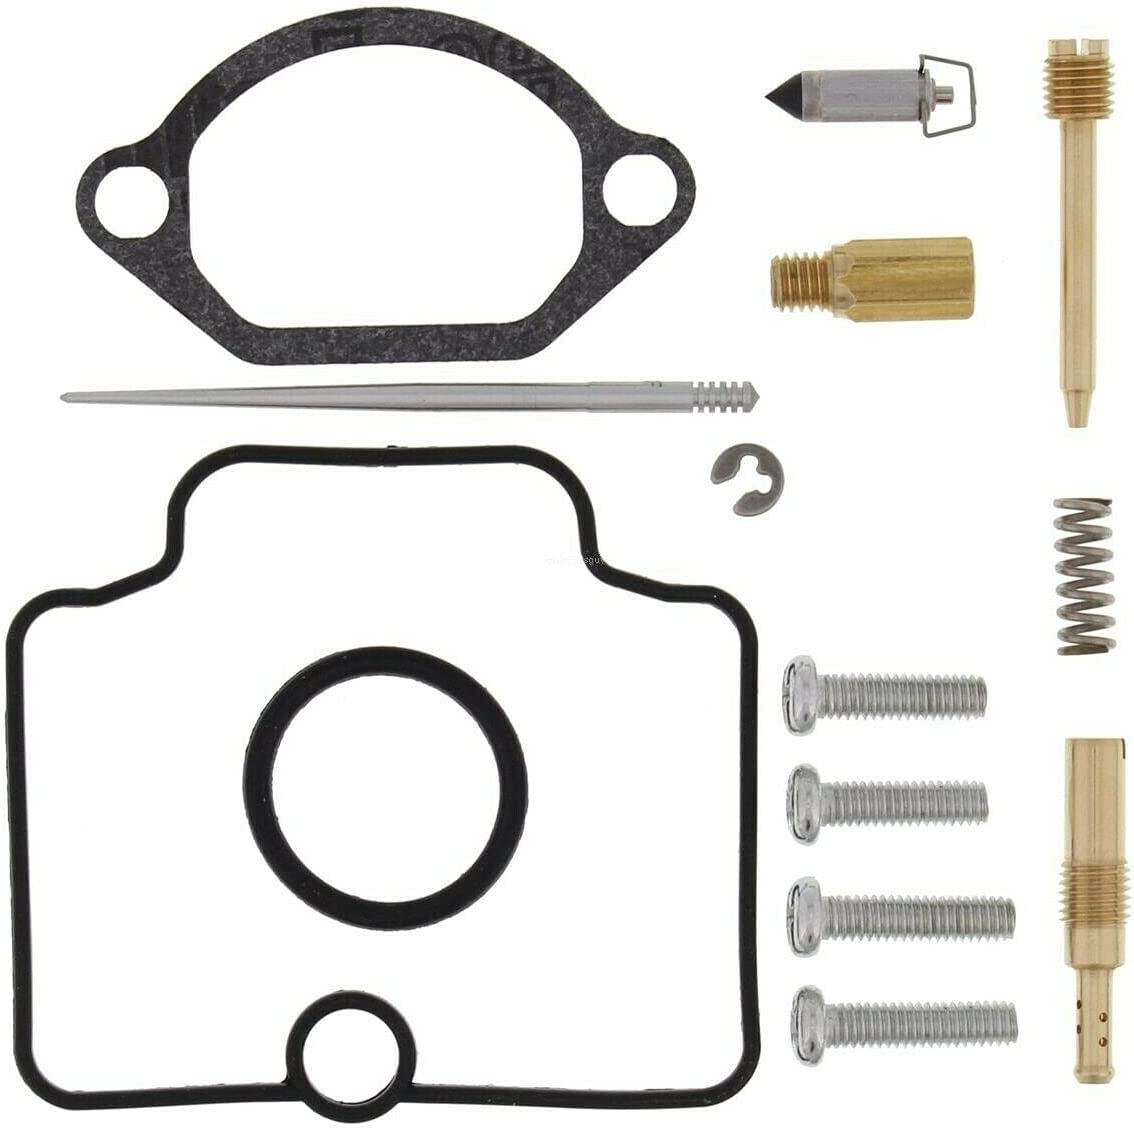 High New product type Performance low-pricing Carburetor Kit Fits - Ca 2001-2013 KX KX85 85